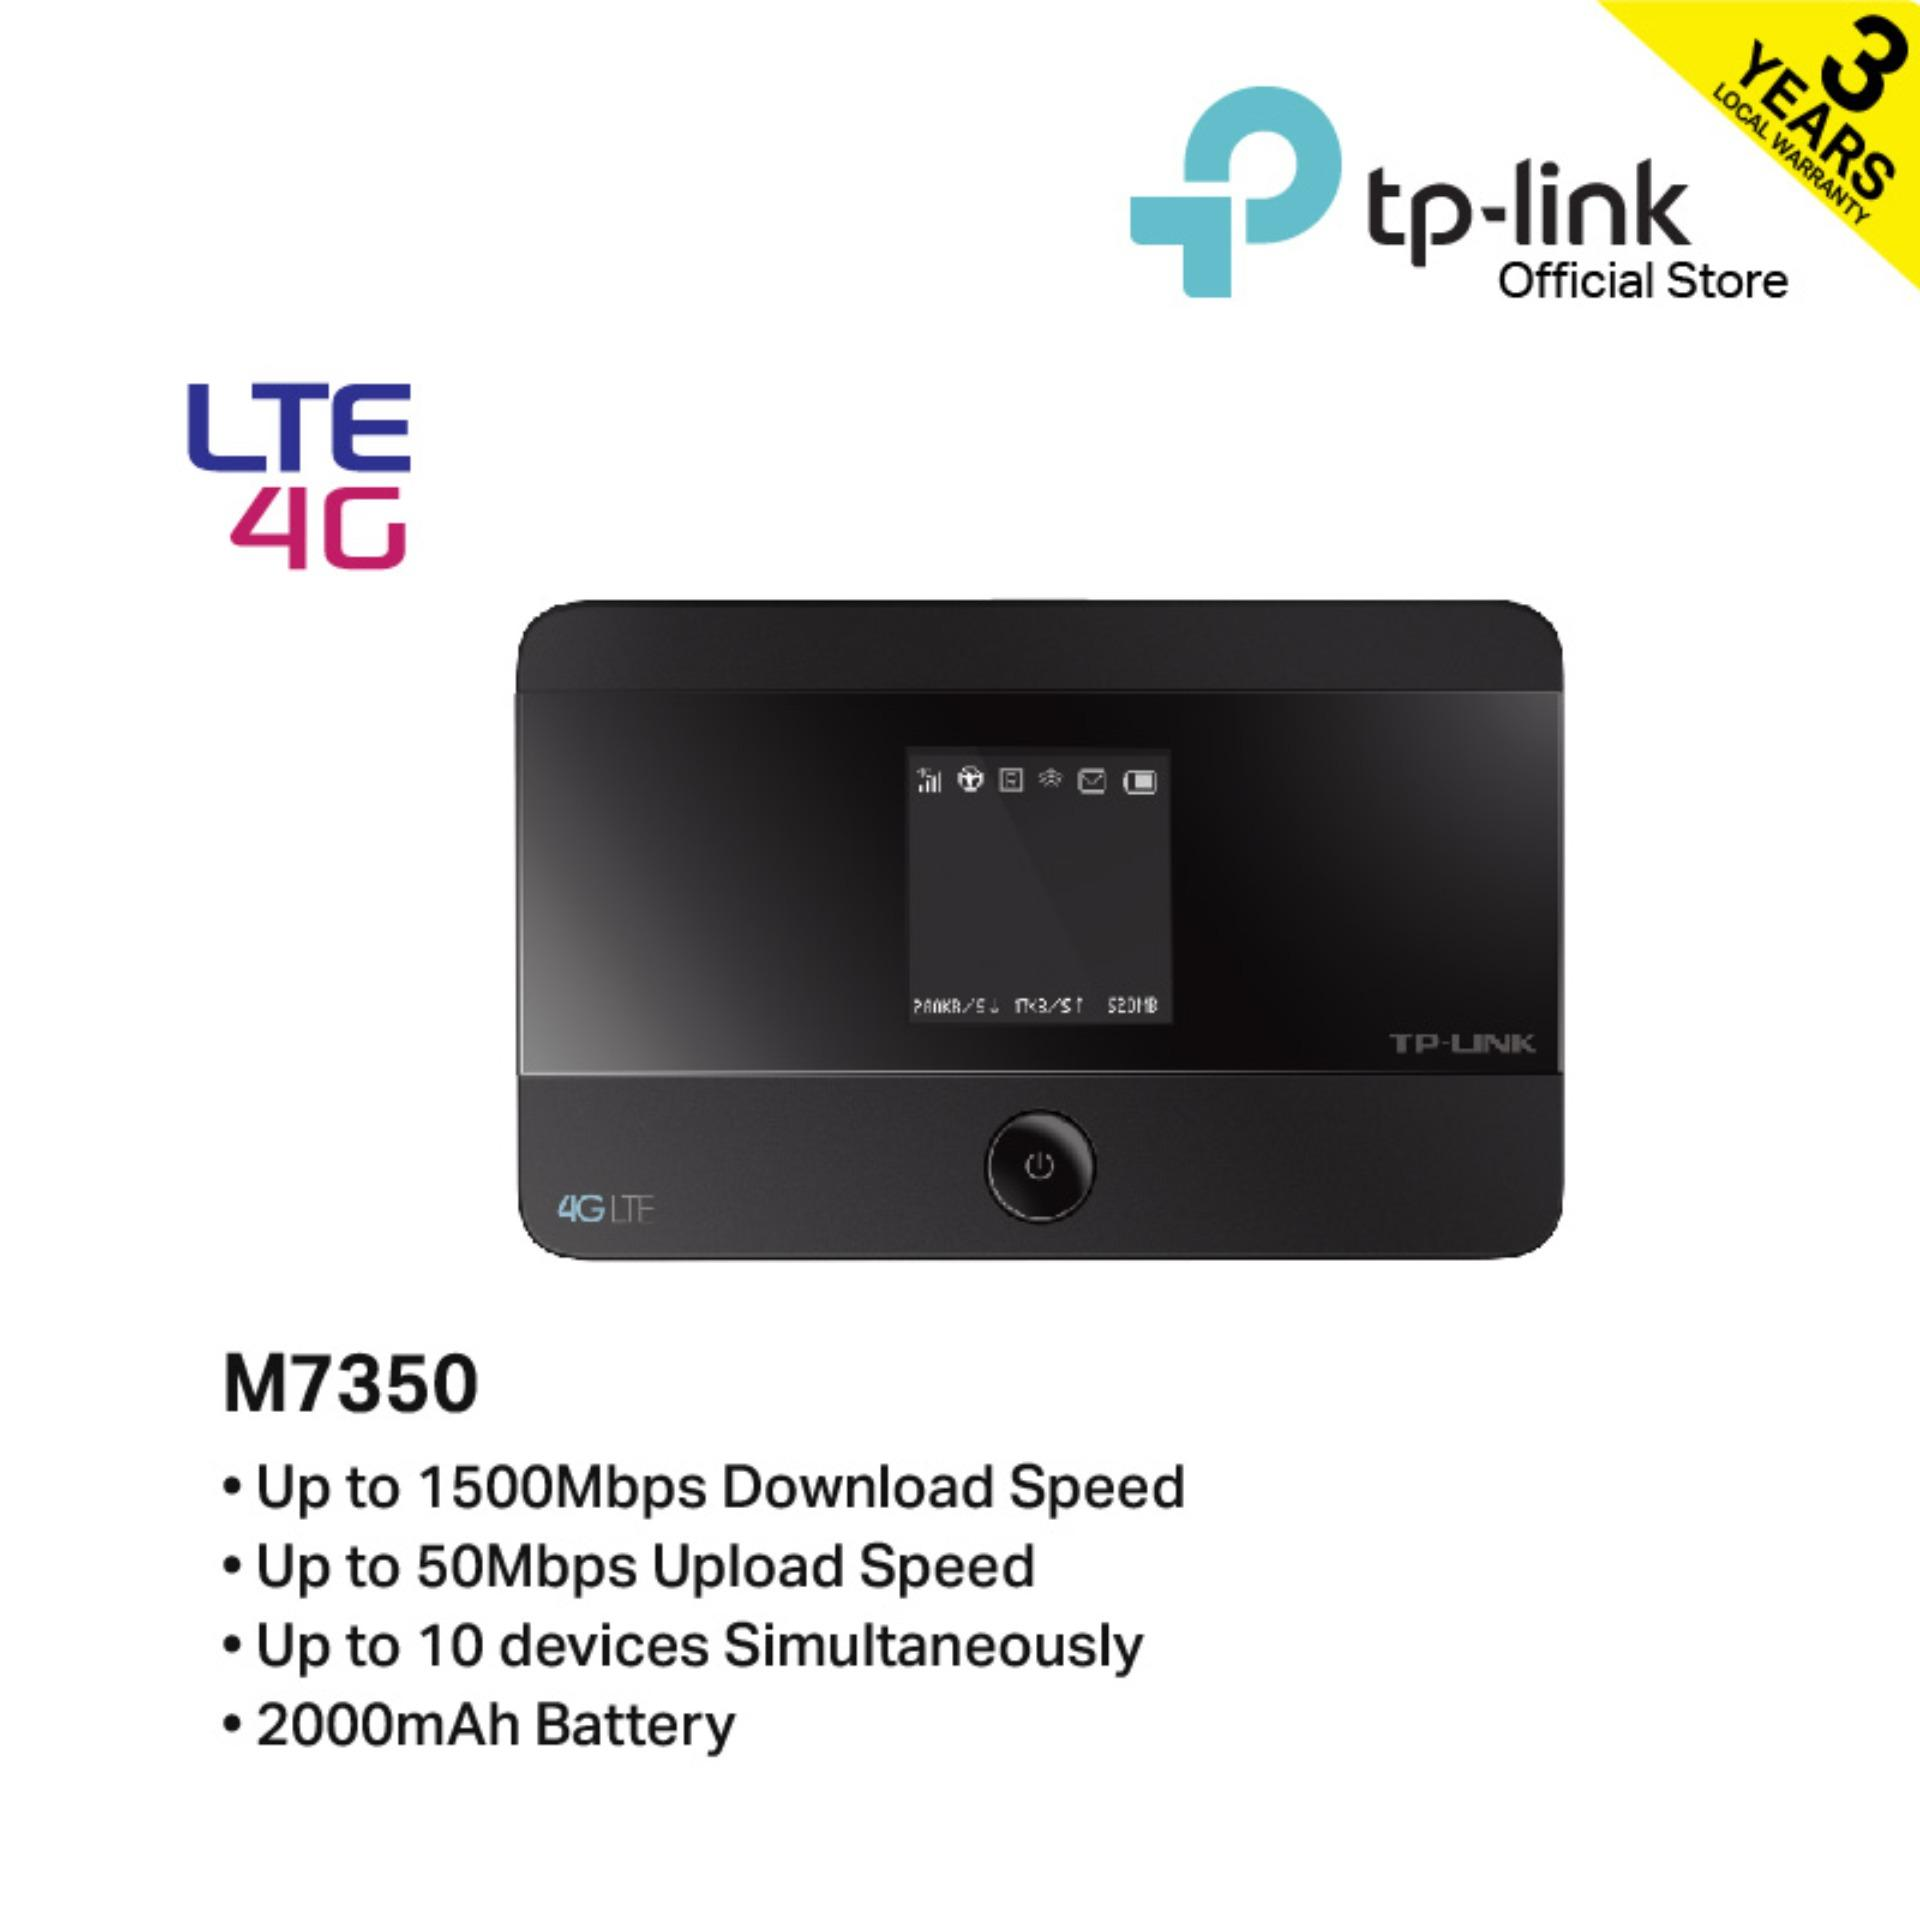 Tp-Link - M7350 Lte-Advanced Mobile Wi-Fi By Tp-Link Official Store.